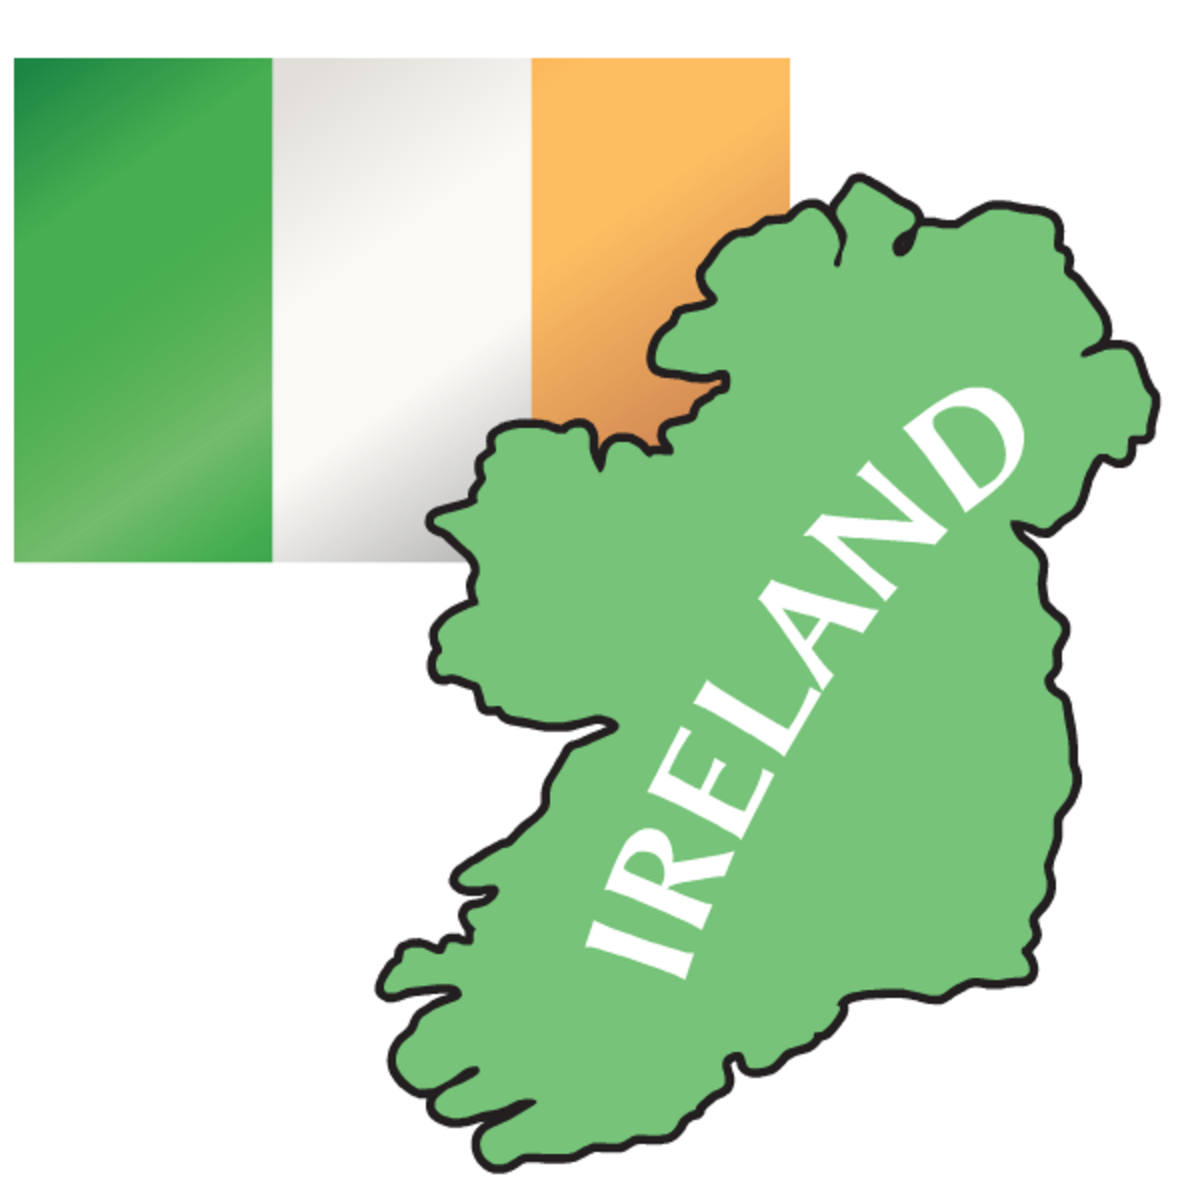 Irish flag with map of Ireland clip art